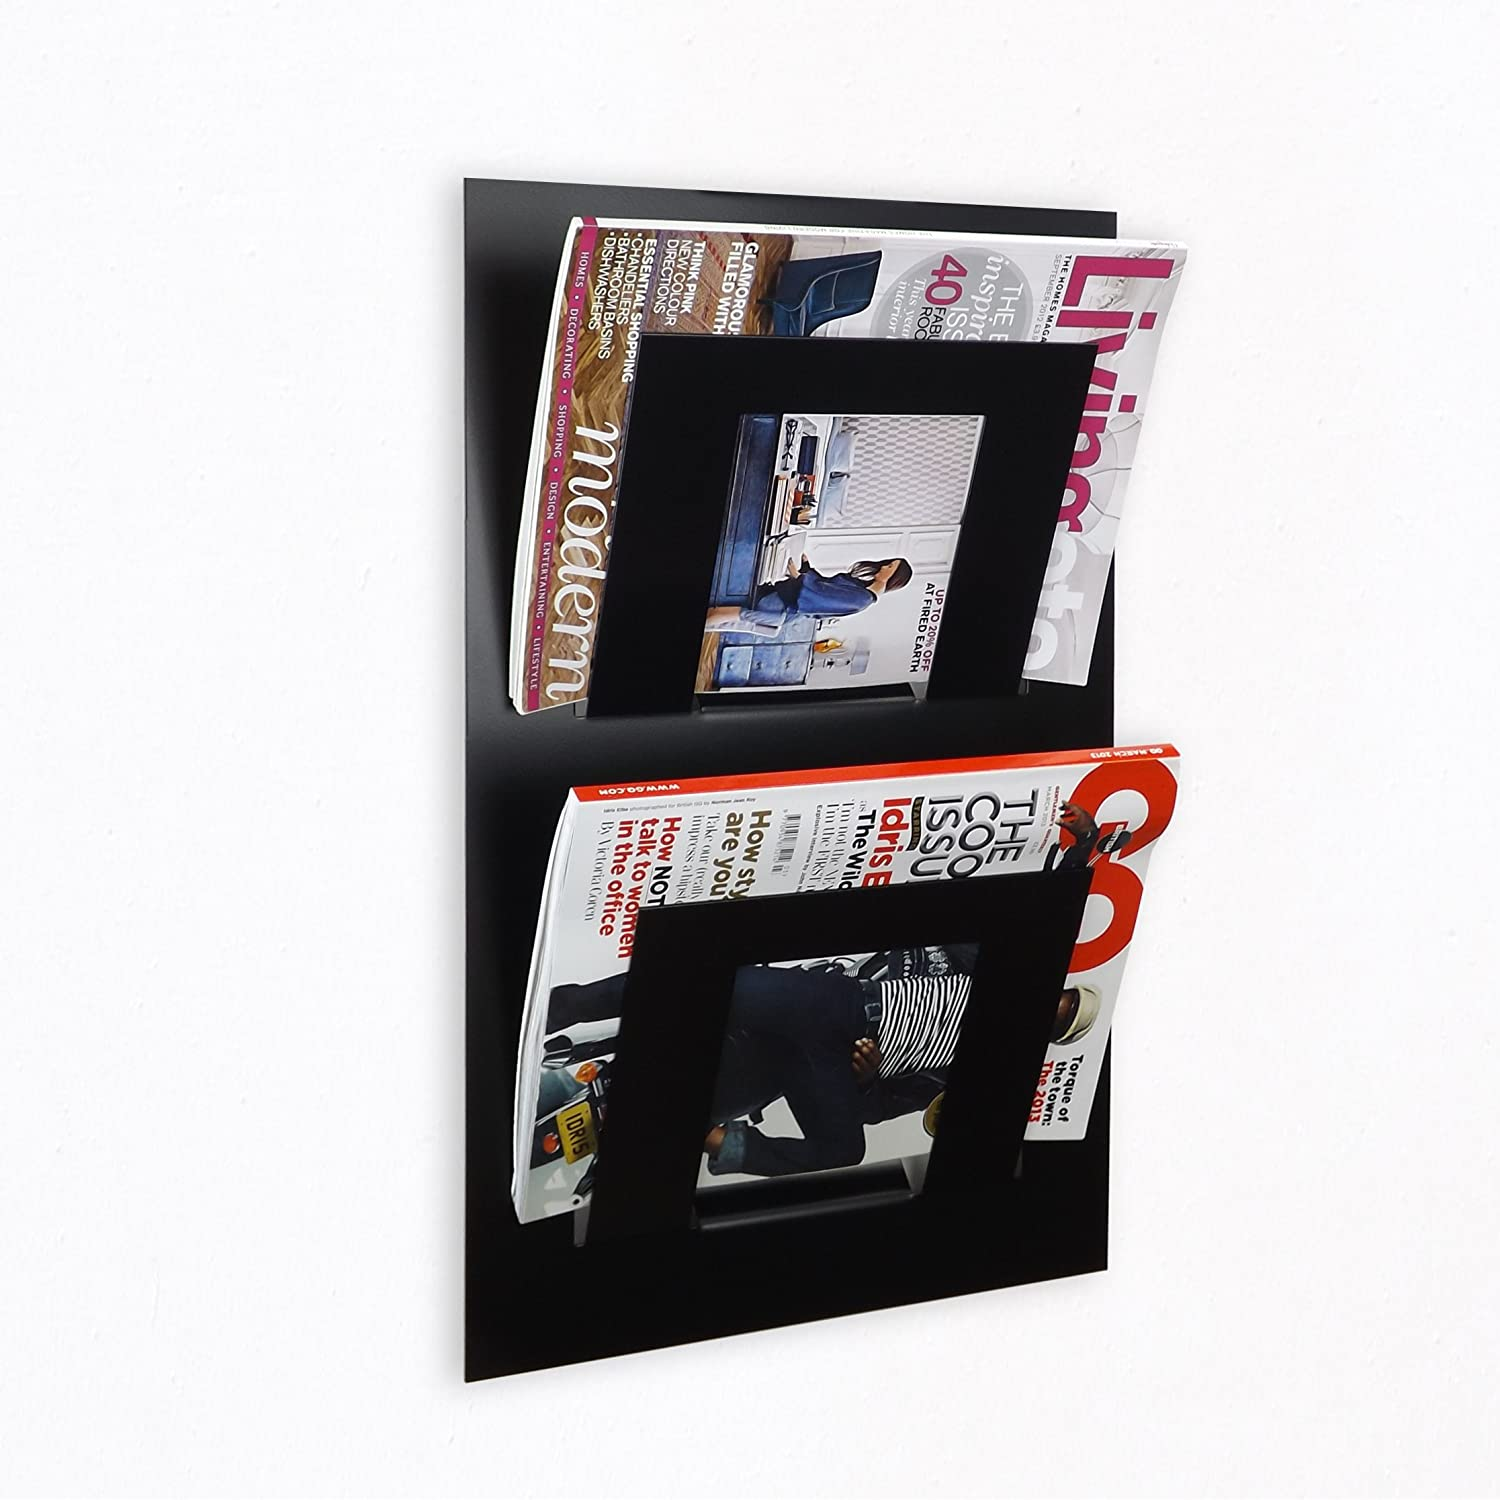 wall mounted magazine rack double (black) amazoncouk kitchen  - wall mounted magazine rack double (black) amazoncouk kitchen  home